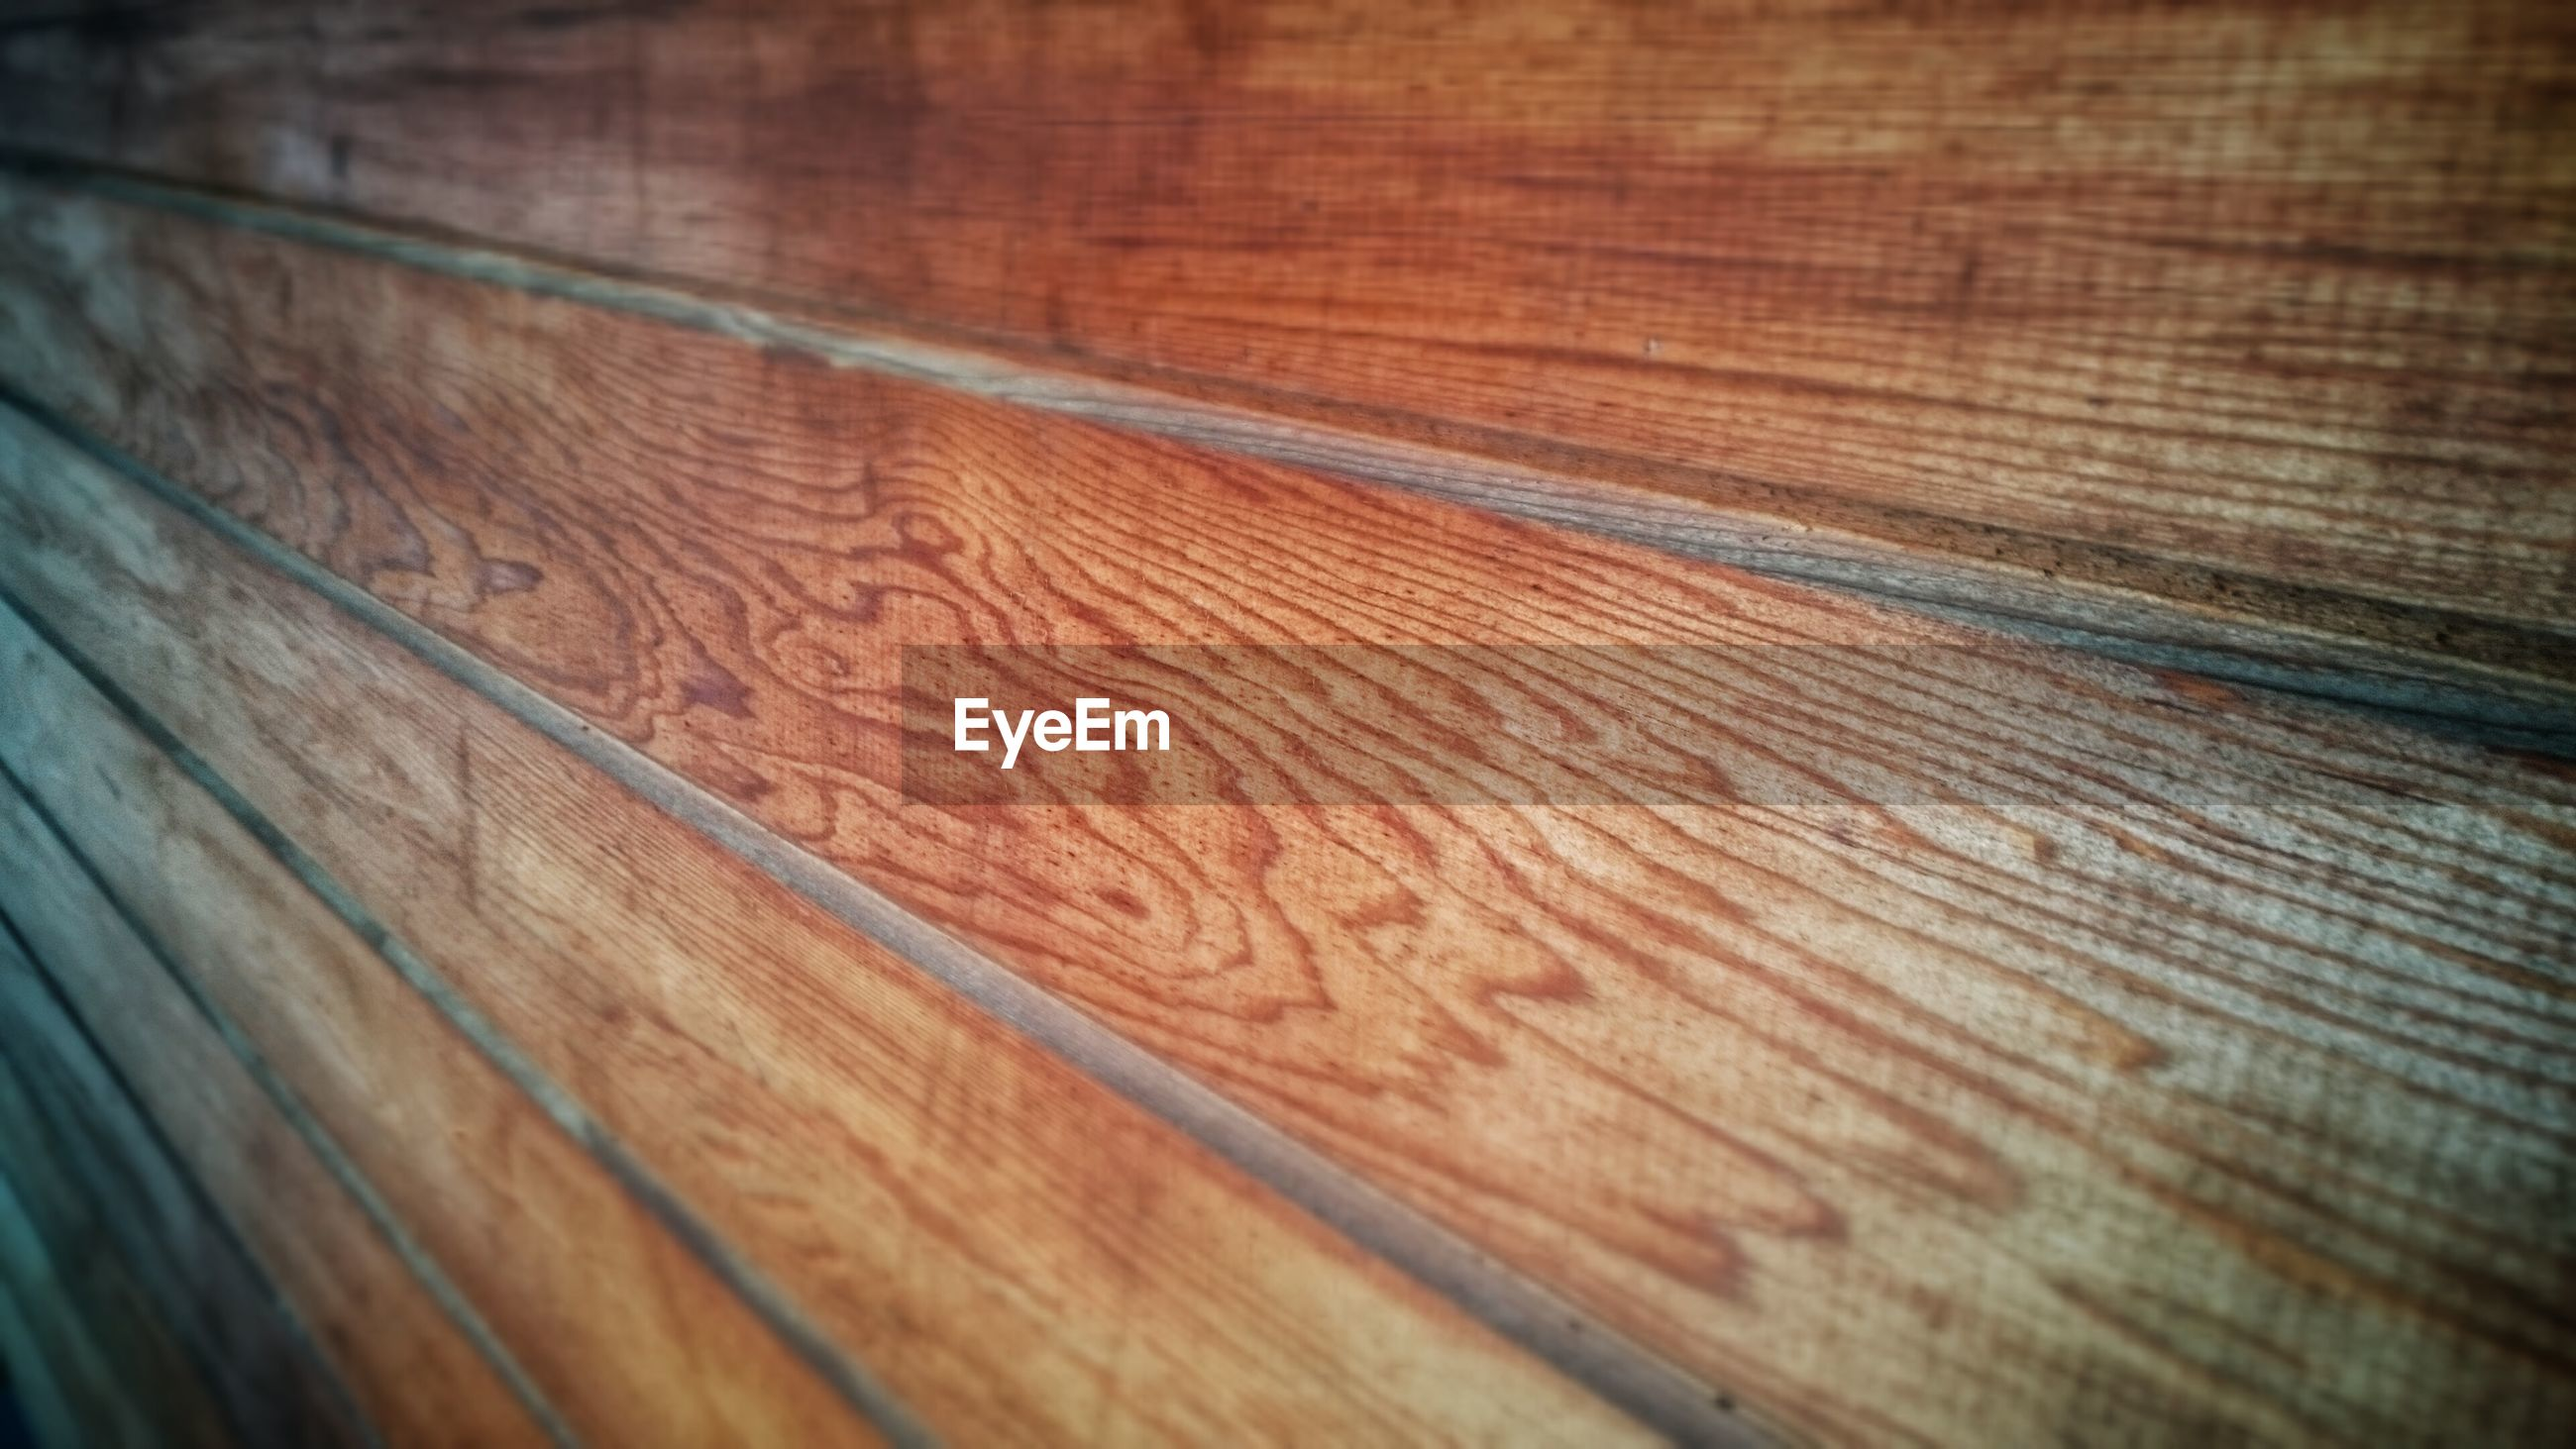 wood - material, wooden, full frame, backgrounds, textured, plank, pattern, wood, close-up, indoors, wall - building feature, weathered, brown, door, selective focus, no people, detail, built structure, day, old